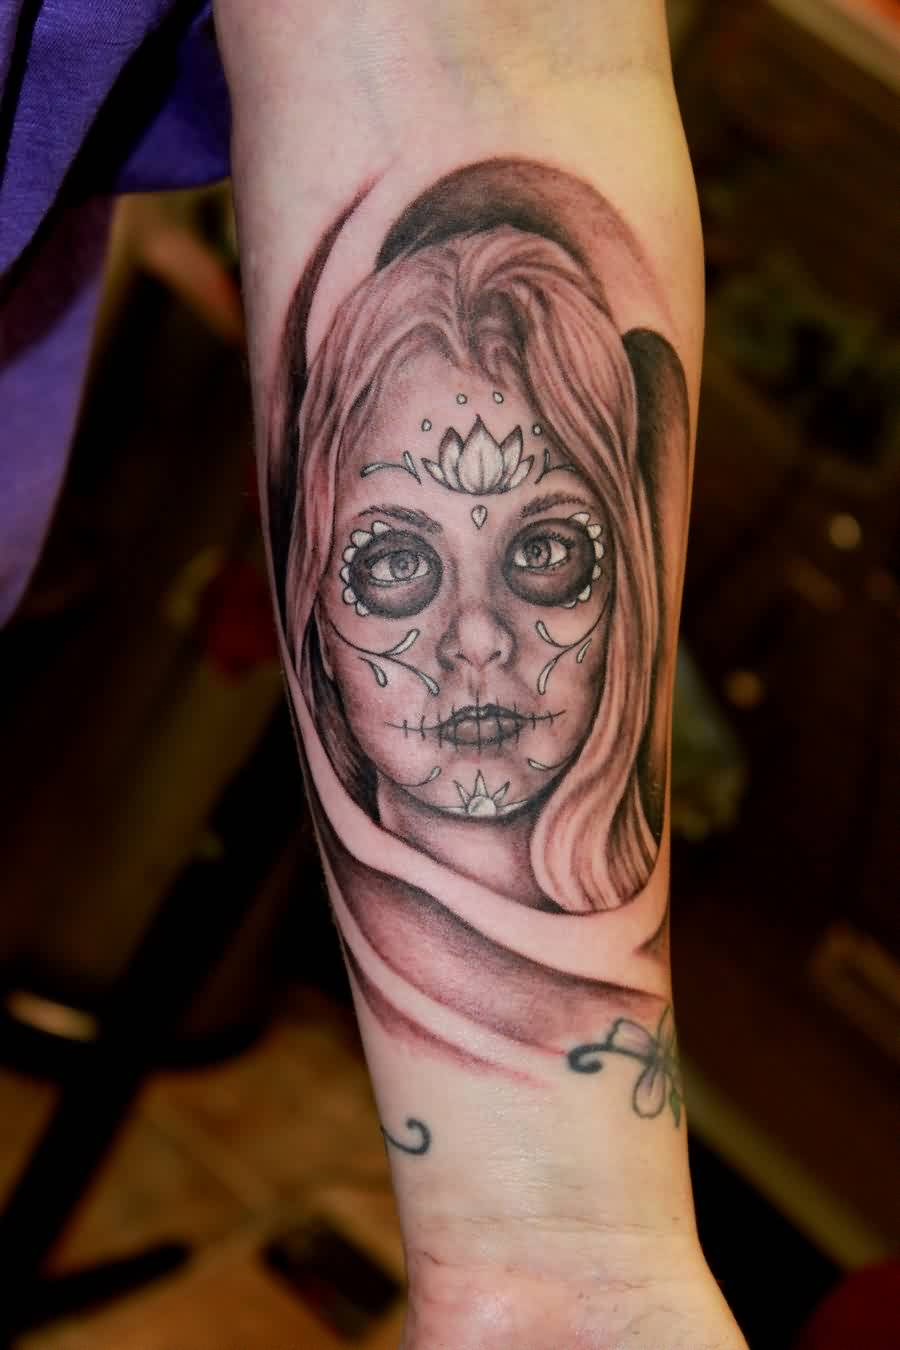 Beautiful Portrait Tattoo On Lower Arm